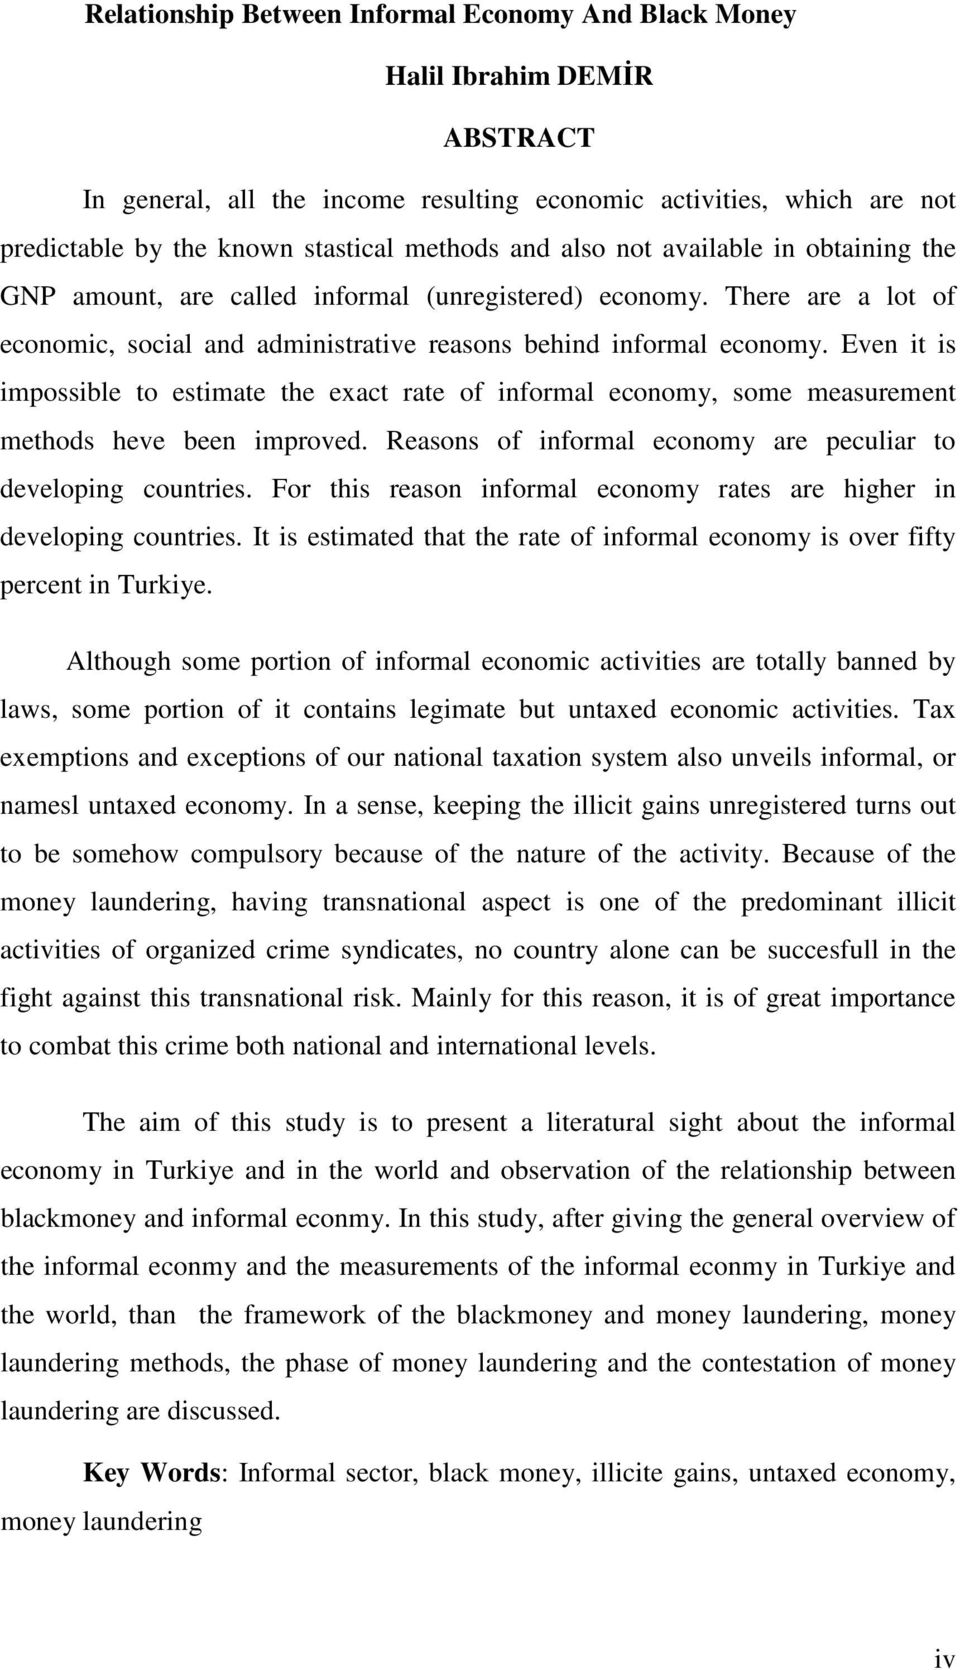 Even it is impossible to estimate the exact rate of informal economy, some measurement methods heve been improved. Reasons of informal economy are peculiar to developing countries.